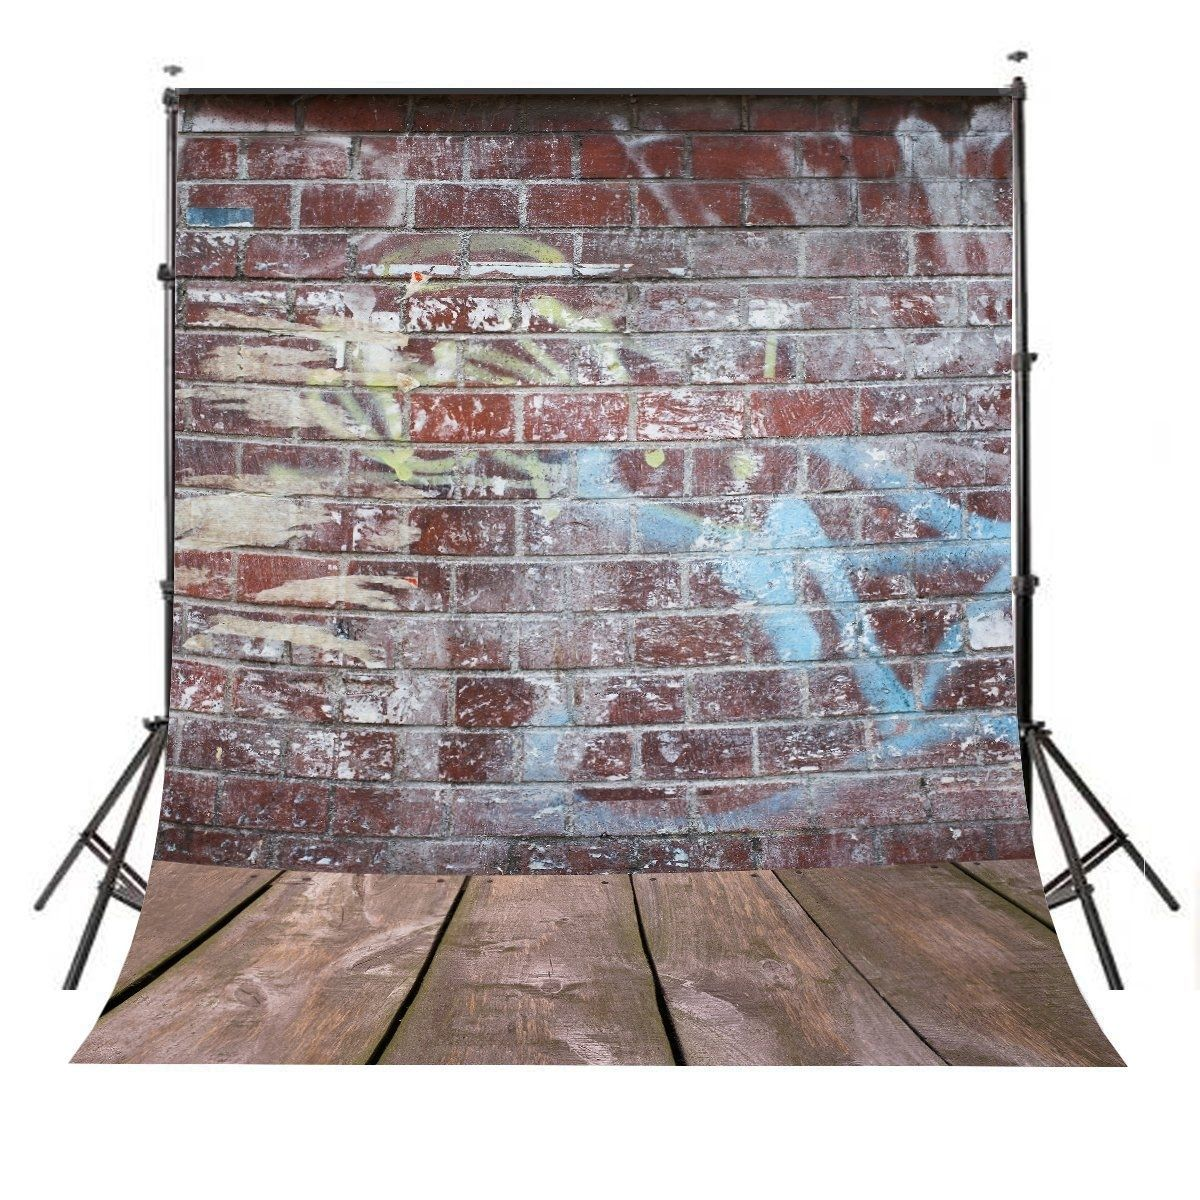 5x7ft Backdrop Colourful Brick Wall Background Classic Wood Floor Photography#5x7ft #backdrop #background #brick #classic #colourful #floor #photography #wall #wood